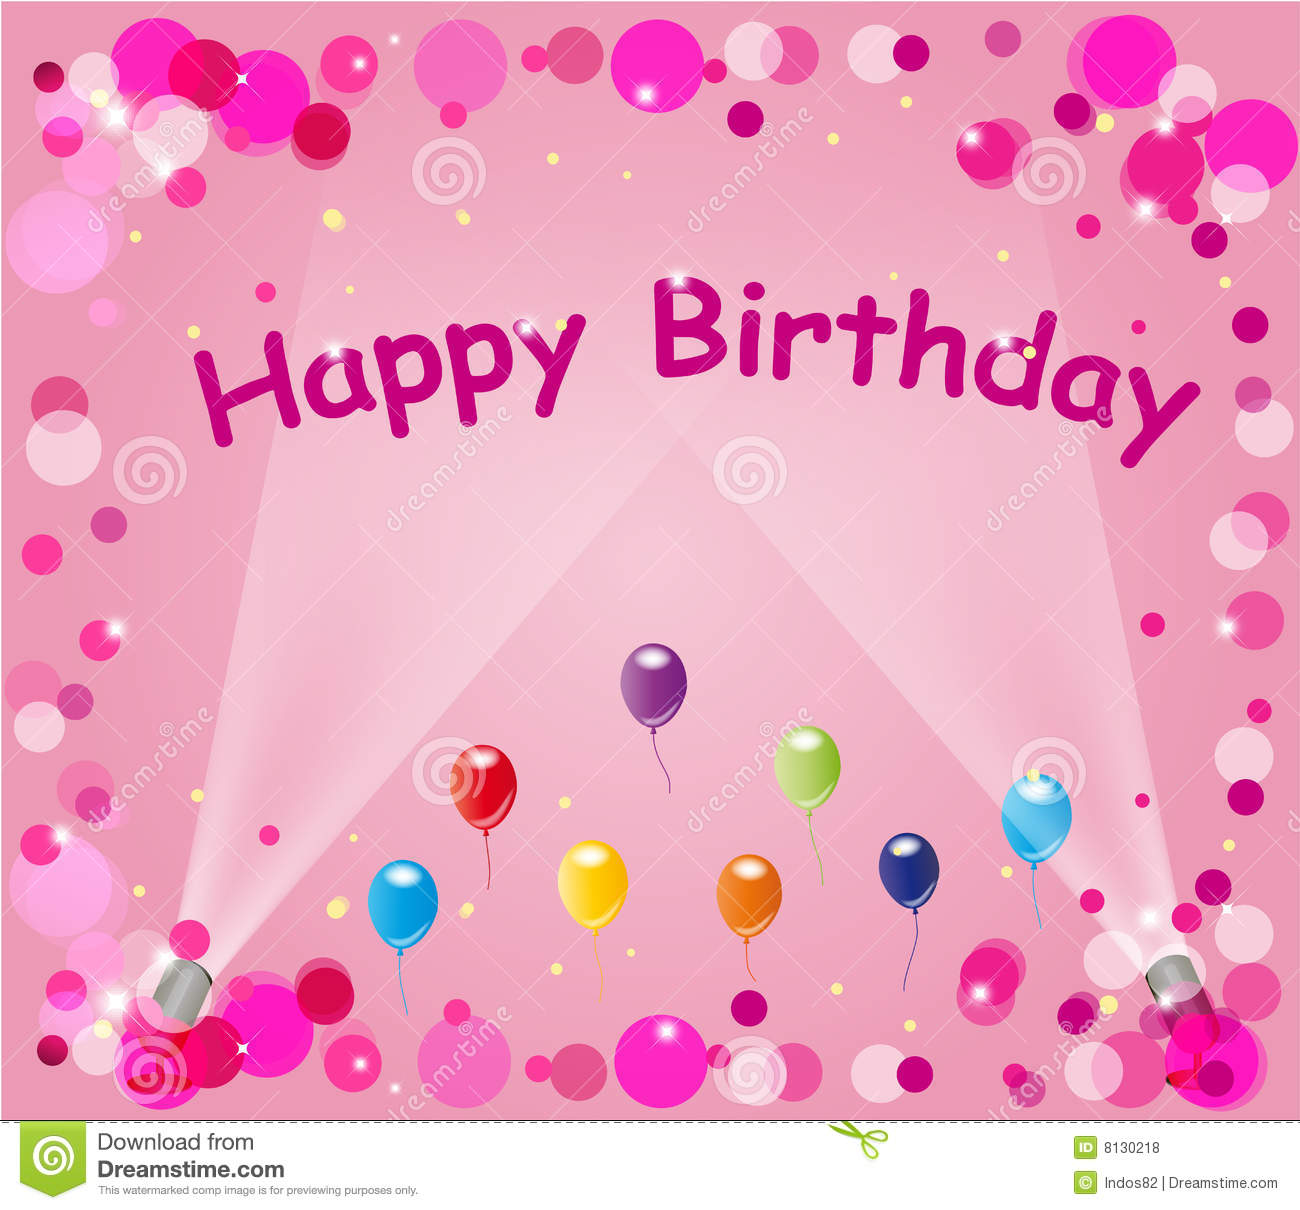 Frame Or Background Design Of Balloons Bubbles Sparkles And The Words Happy Birthday On Pink With Spotlights